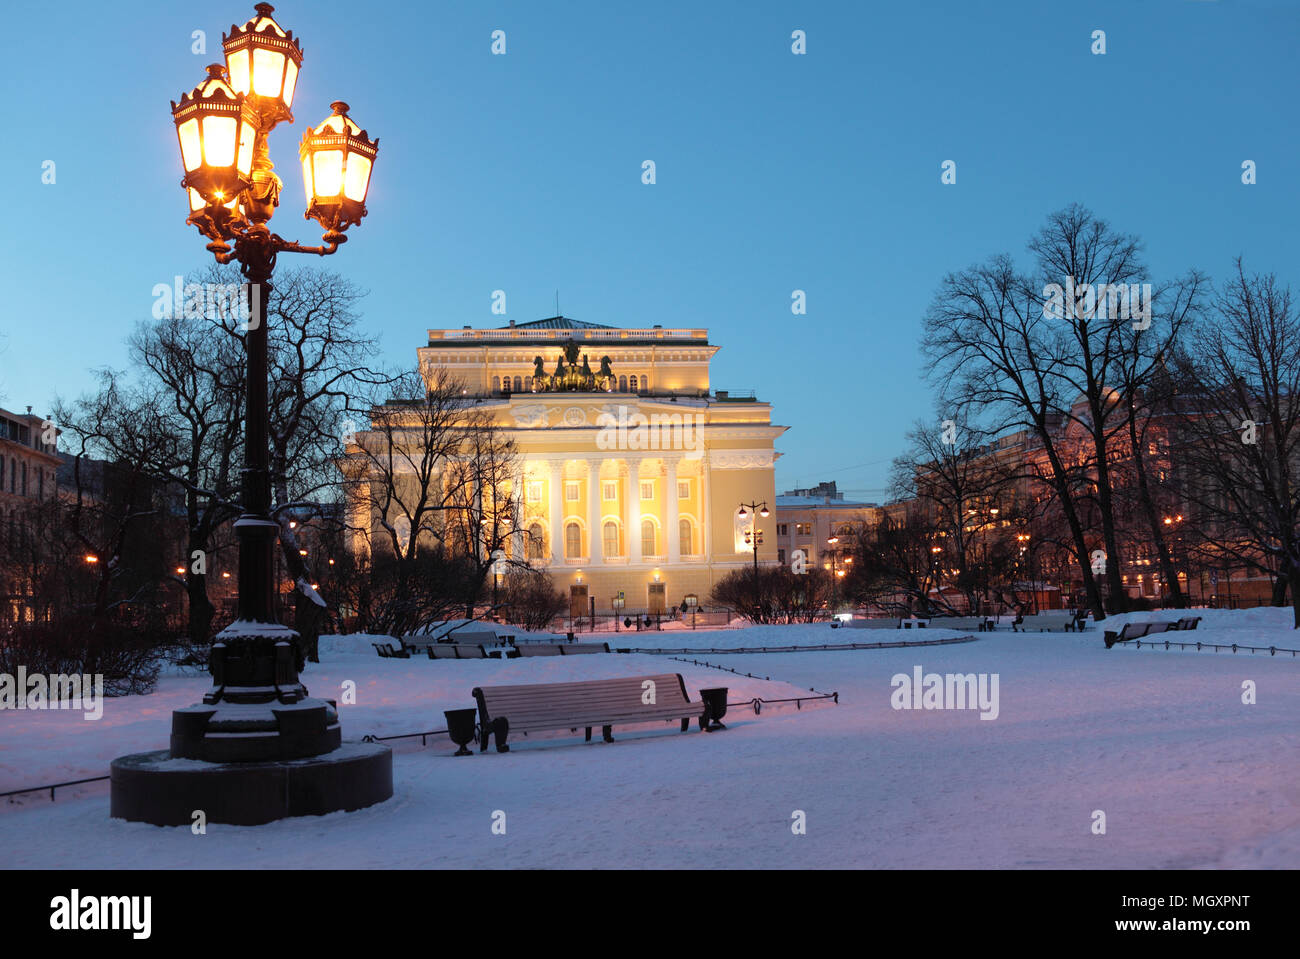 Alexandrinsky Theatre, or Russian State Pushkin Academy Drama Theater in St. Petersburg, Russia, in a winter morning - Stock Image